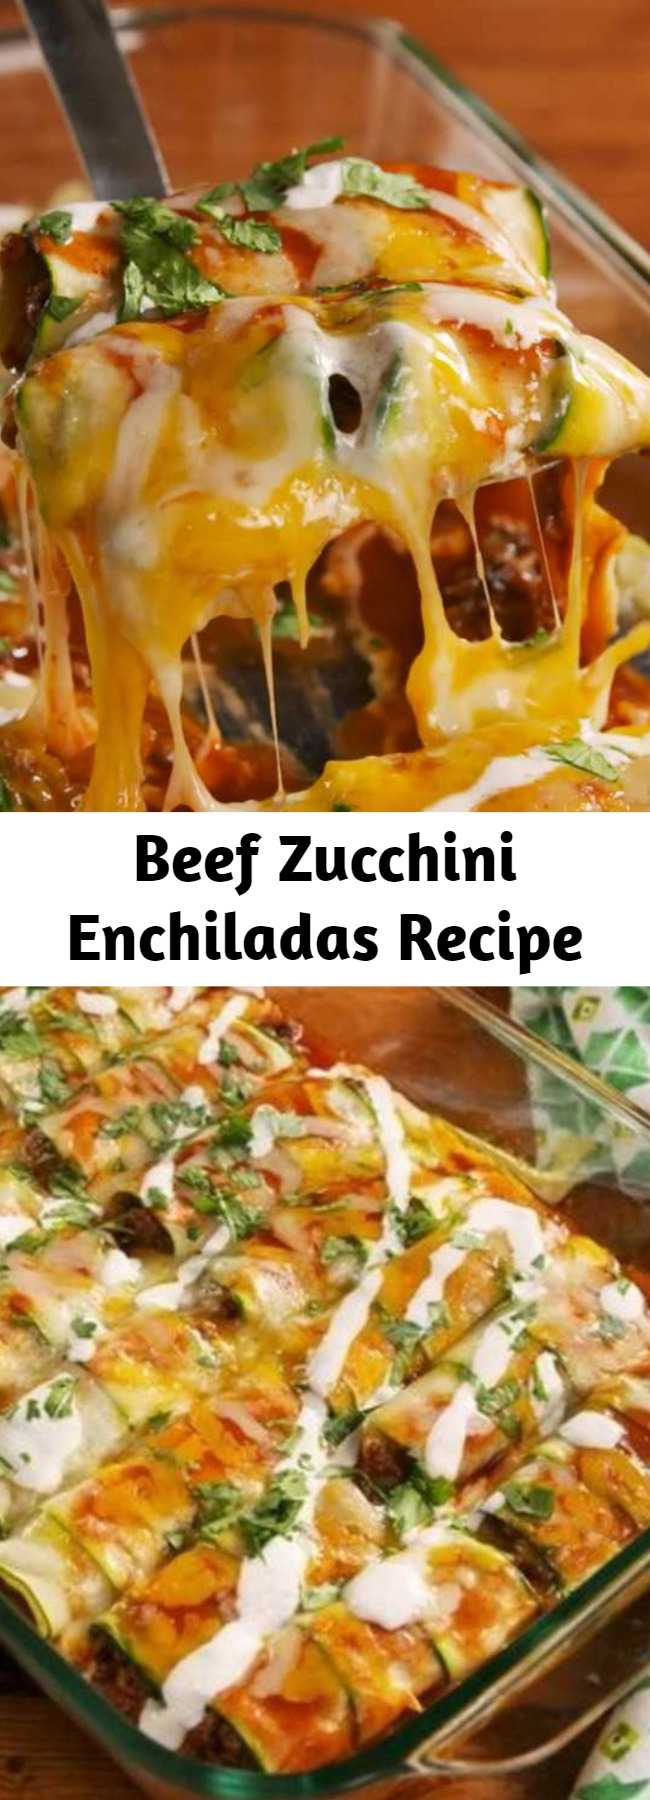 Beef Zucchini Enchiladas Recipe - Zucchini can do it all and these enchiladas prove it! It's much easier to roll up than you would imaging making these so fun to make. #lowcarb #zucchini #healthyenchiladas #healthyrecipes